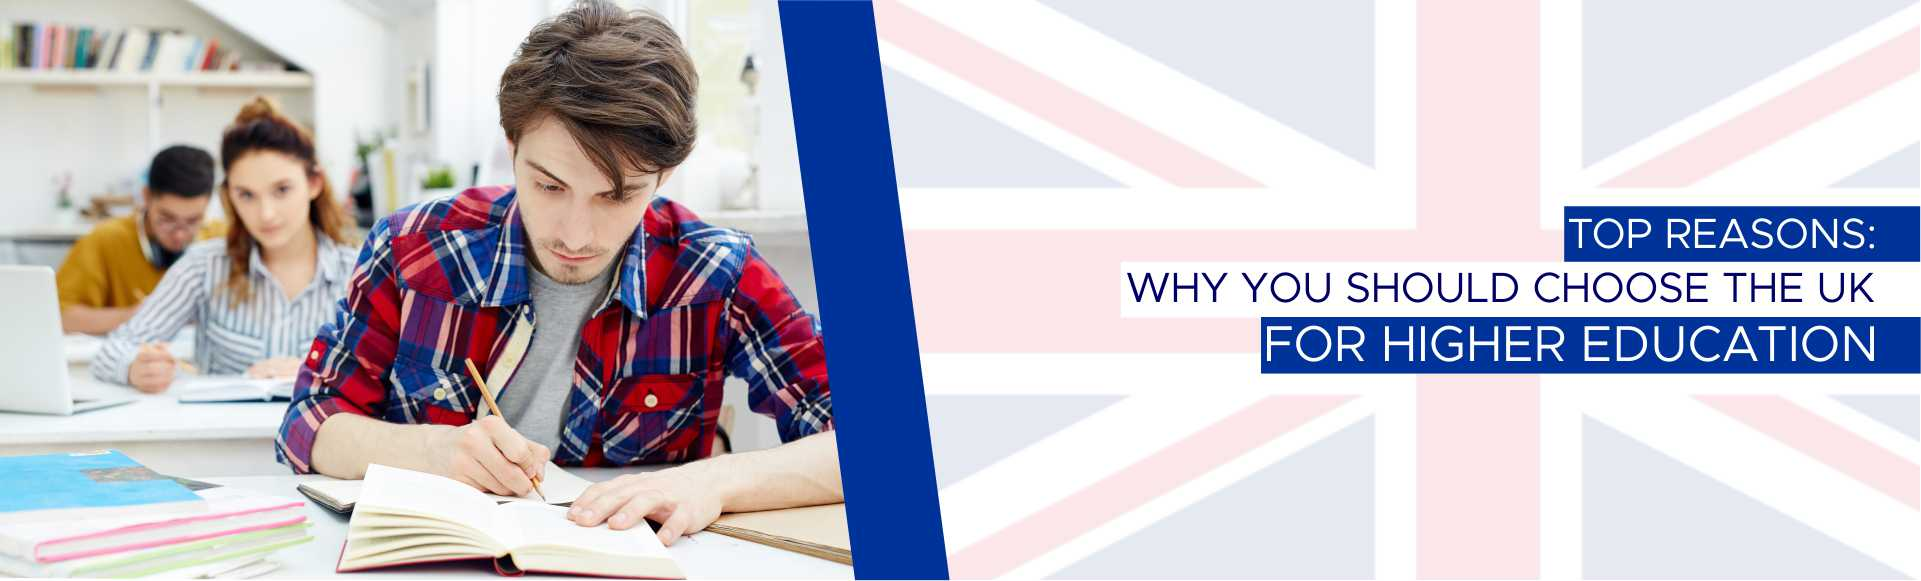 Top Reasons: Why You Should Choose the UK for Higher Education